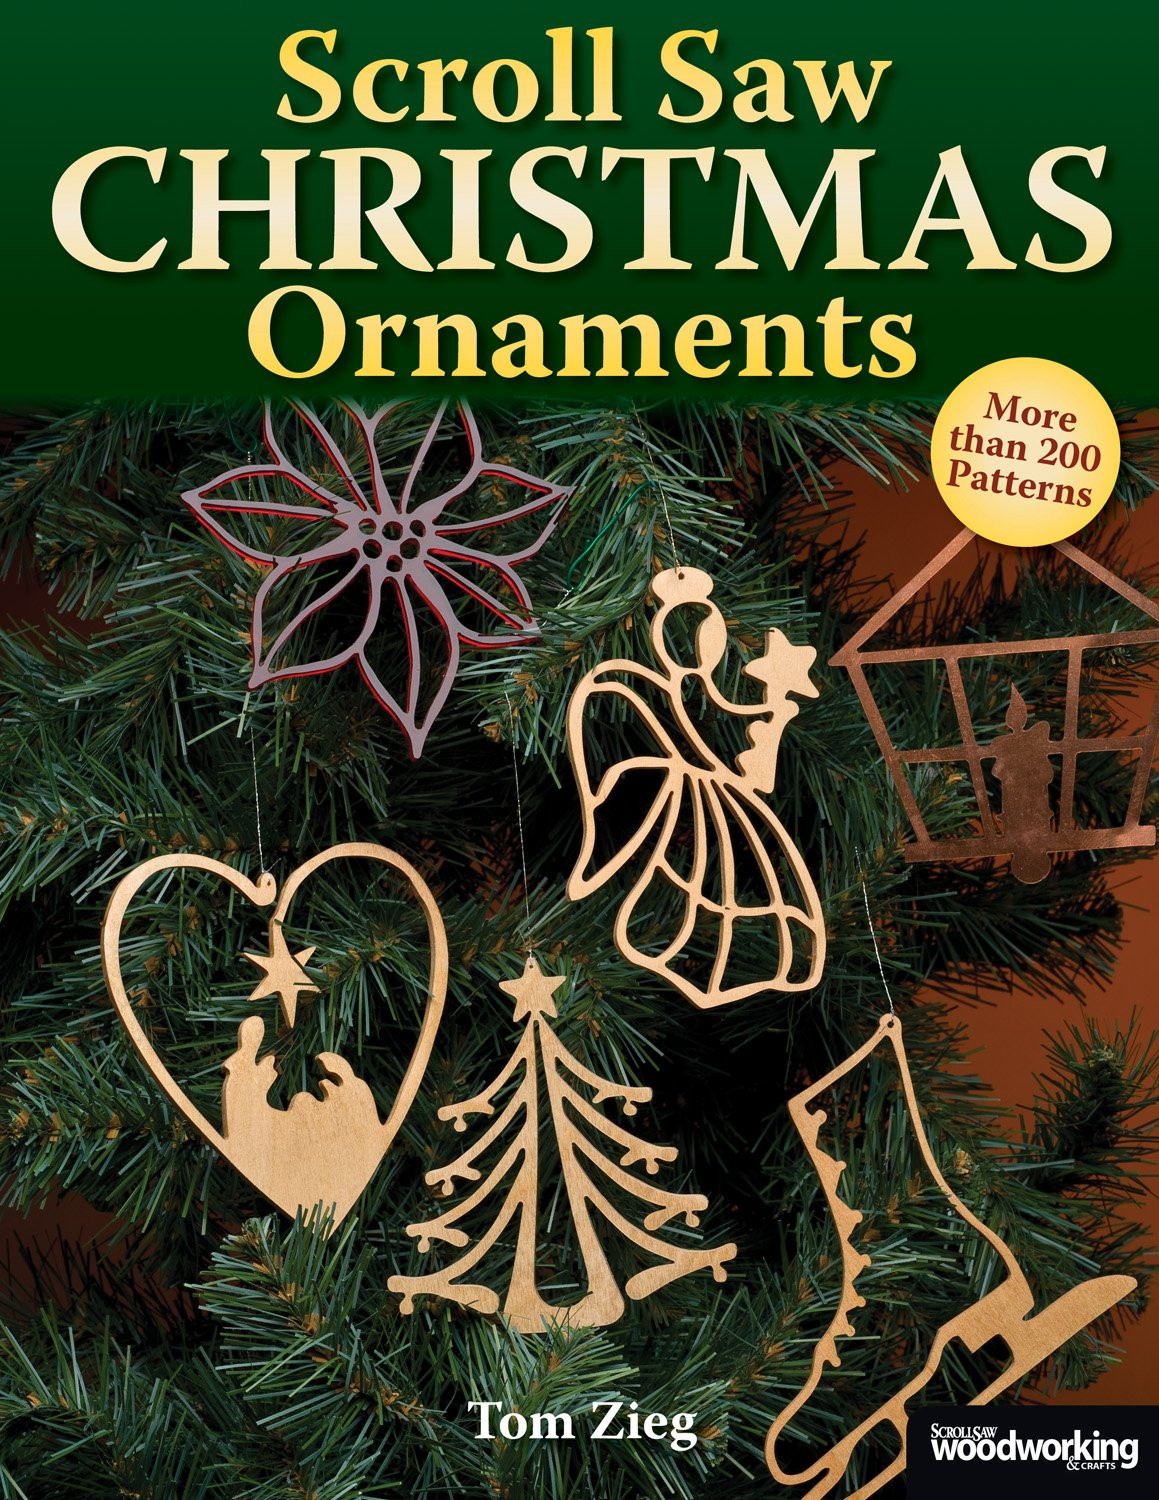 Scroll Saw Christmas Ornaments Patterns product image